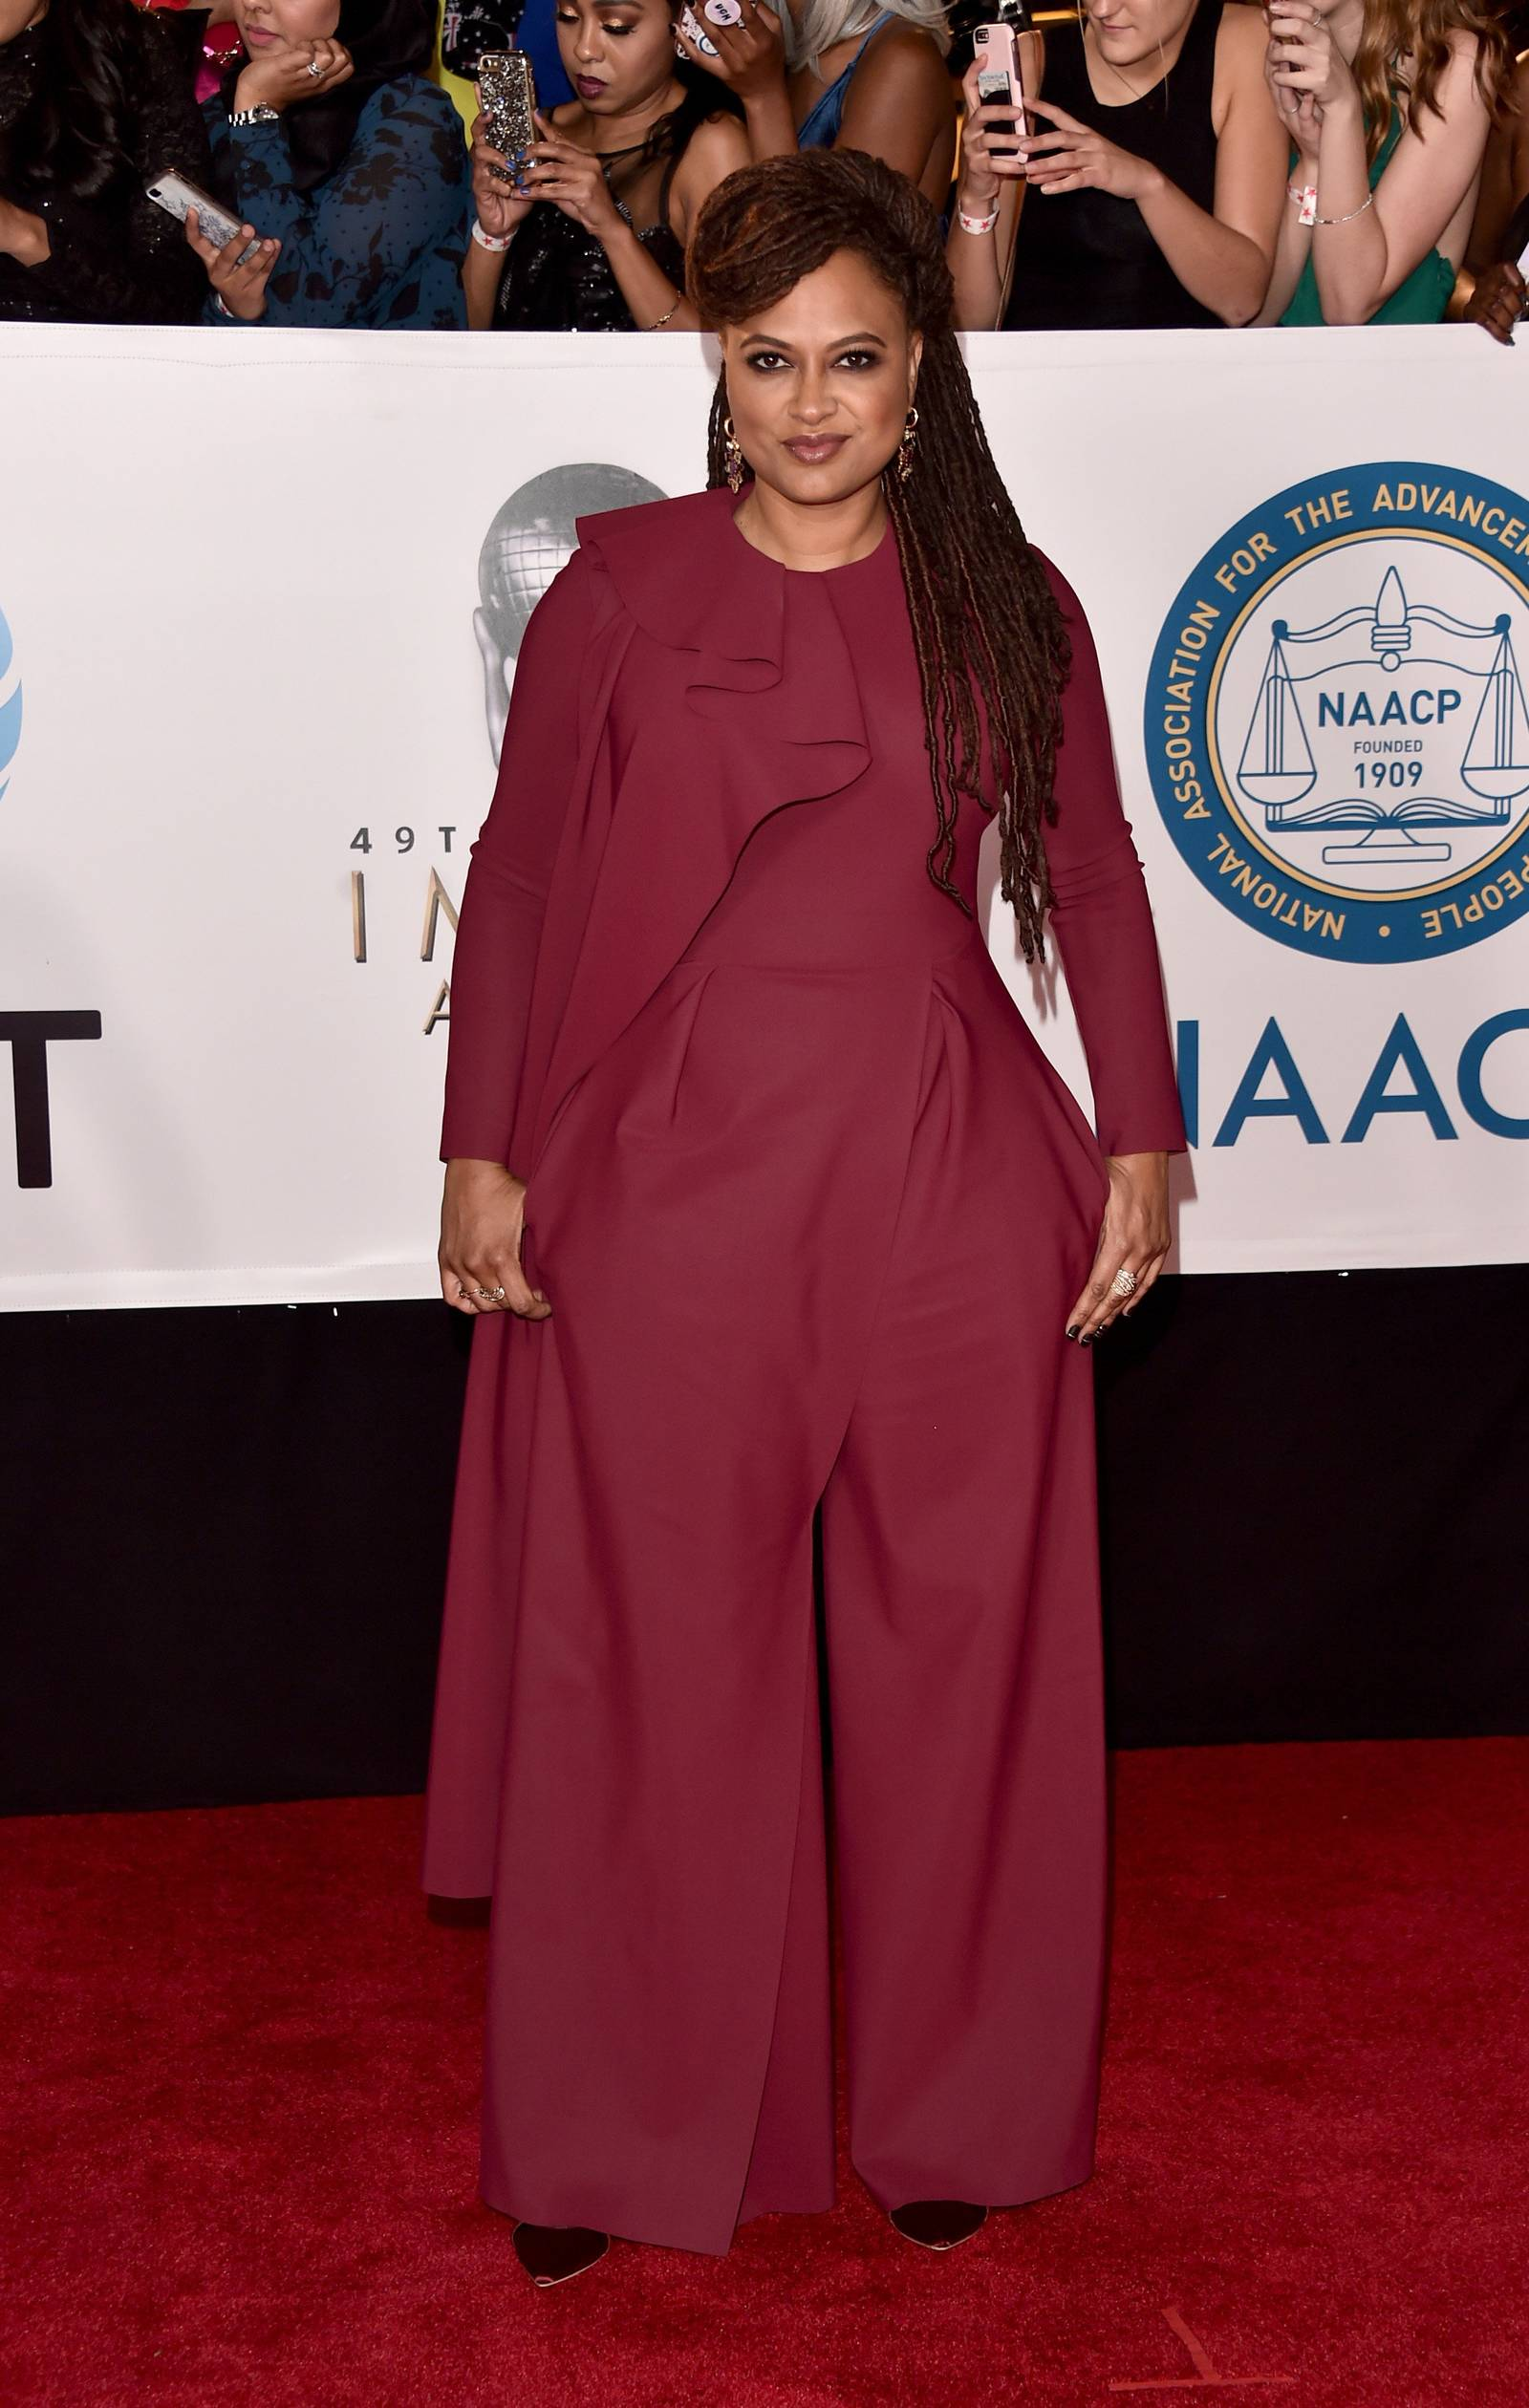 Ava DuVernay (Photo by Alberto E. Rodriguez/Getty Images for NAACP )